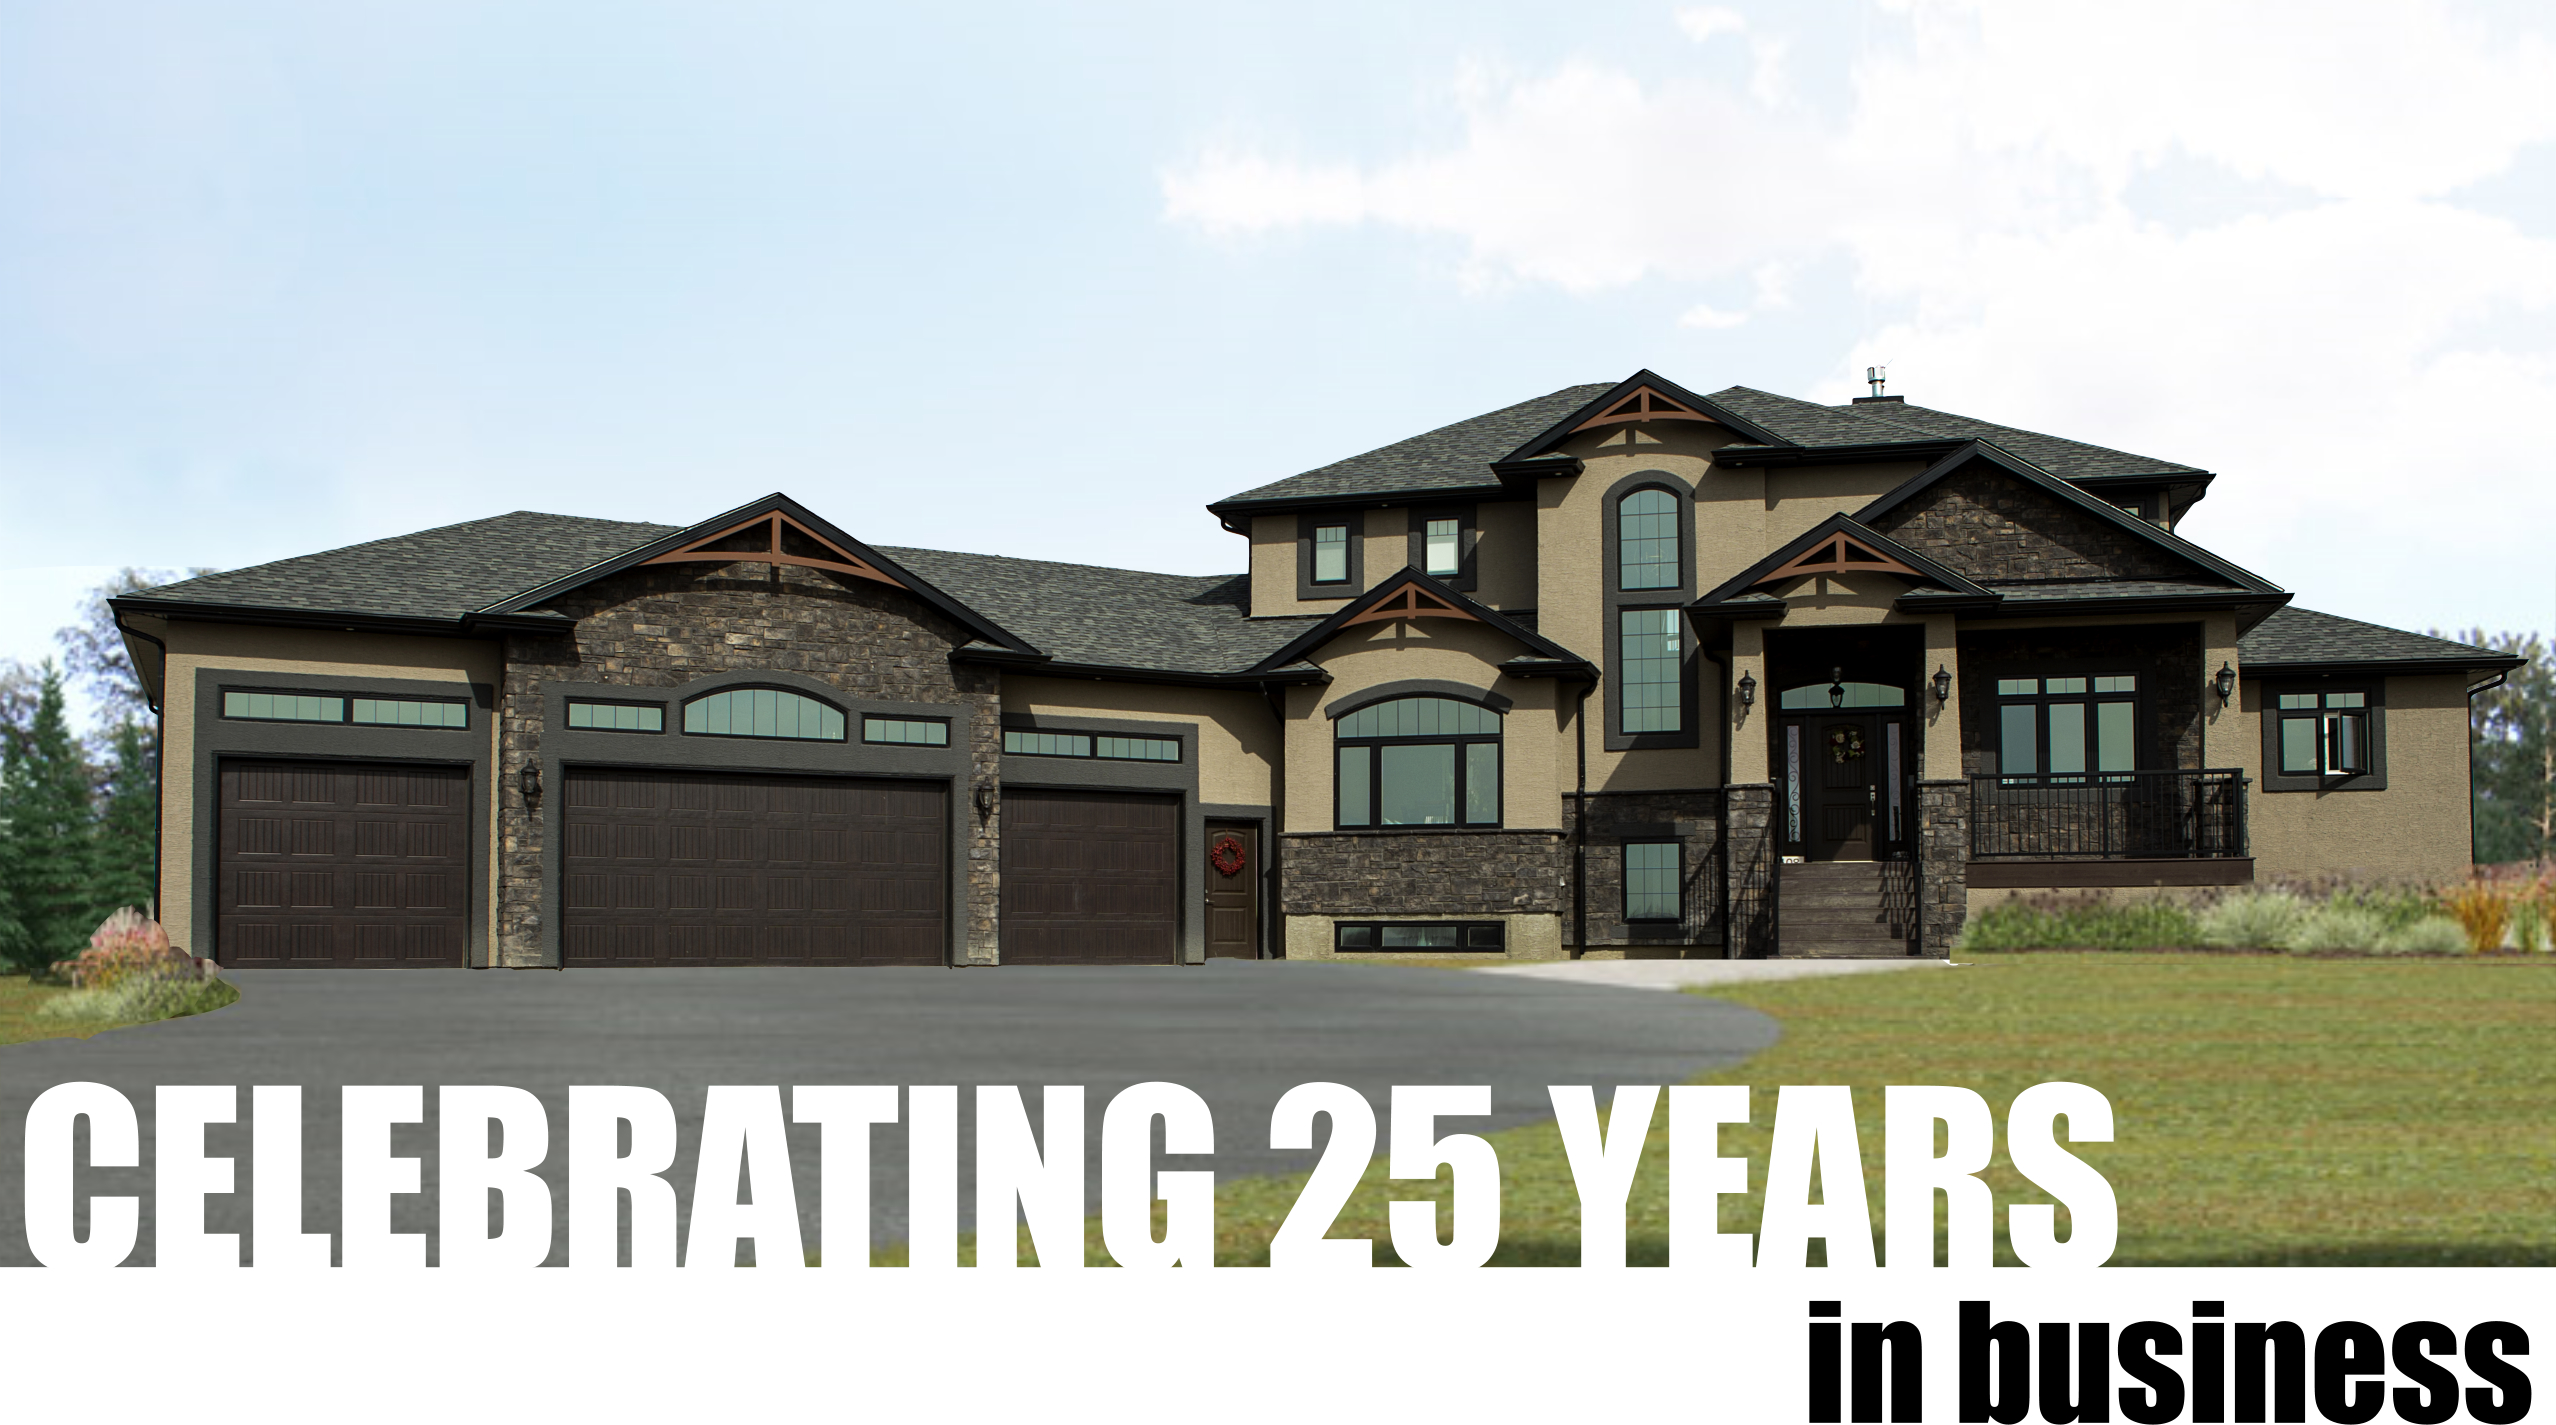 celebrating 25 years in business with emerald park homes